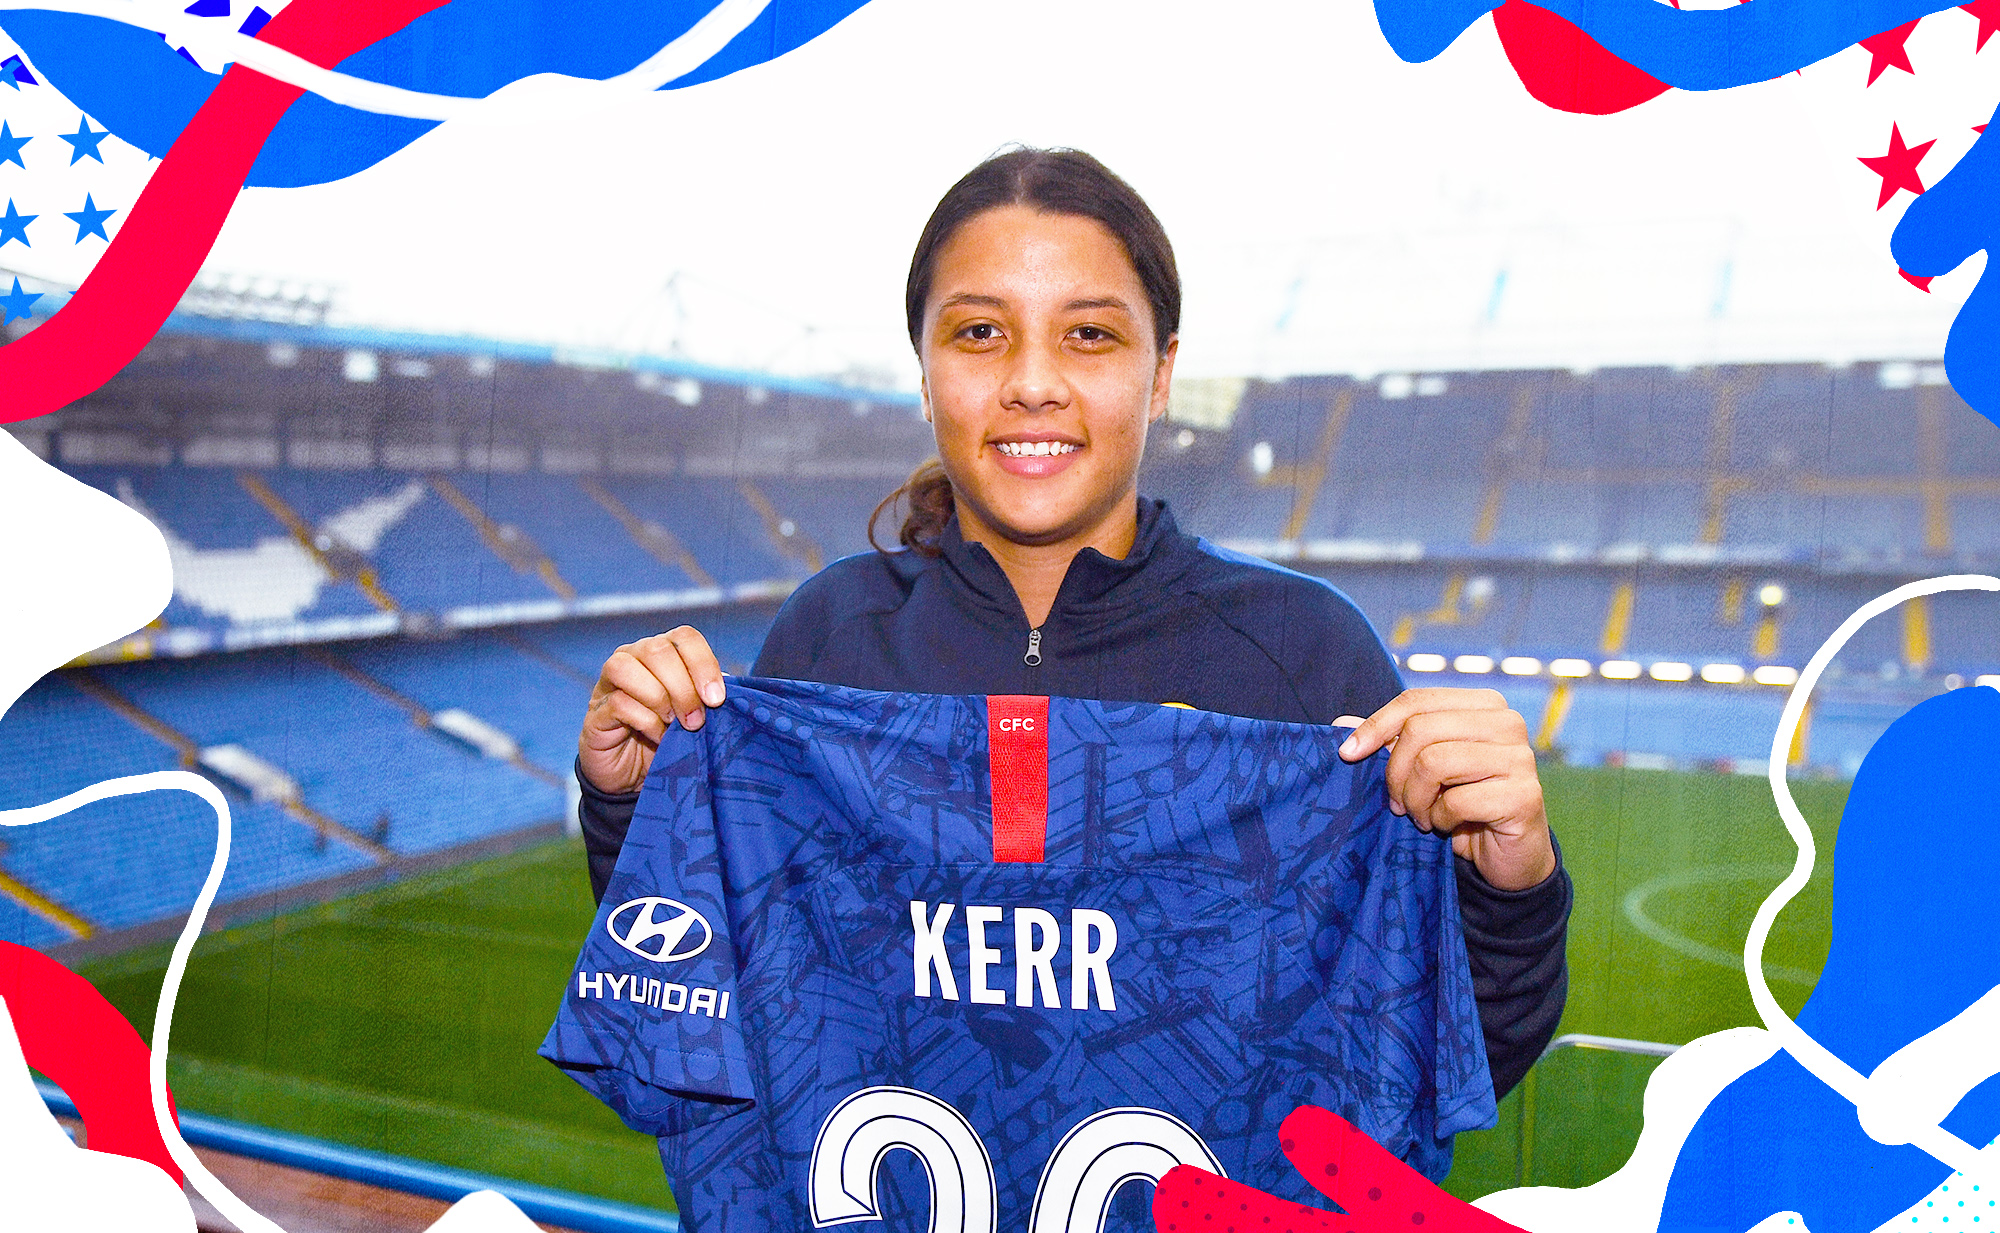 Chelsea's Sam Kerr signing could start a women's soccer arms race